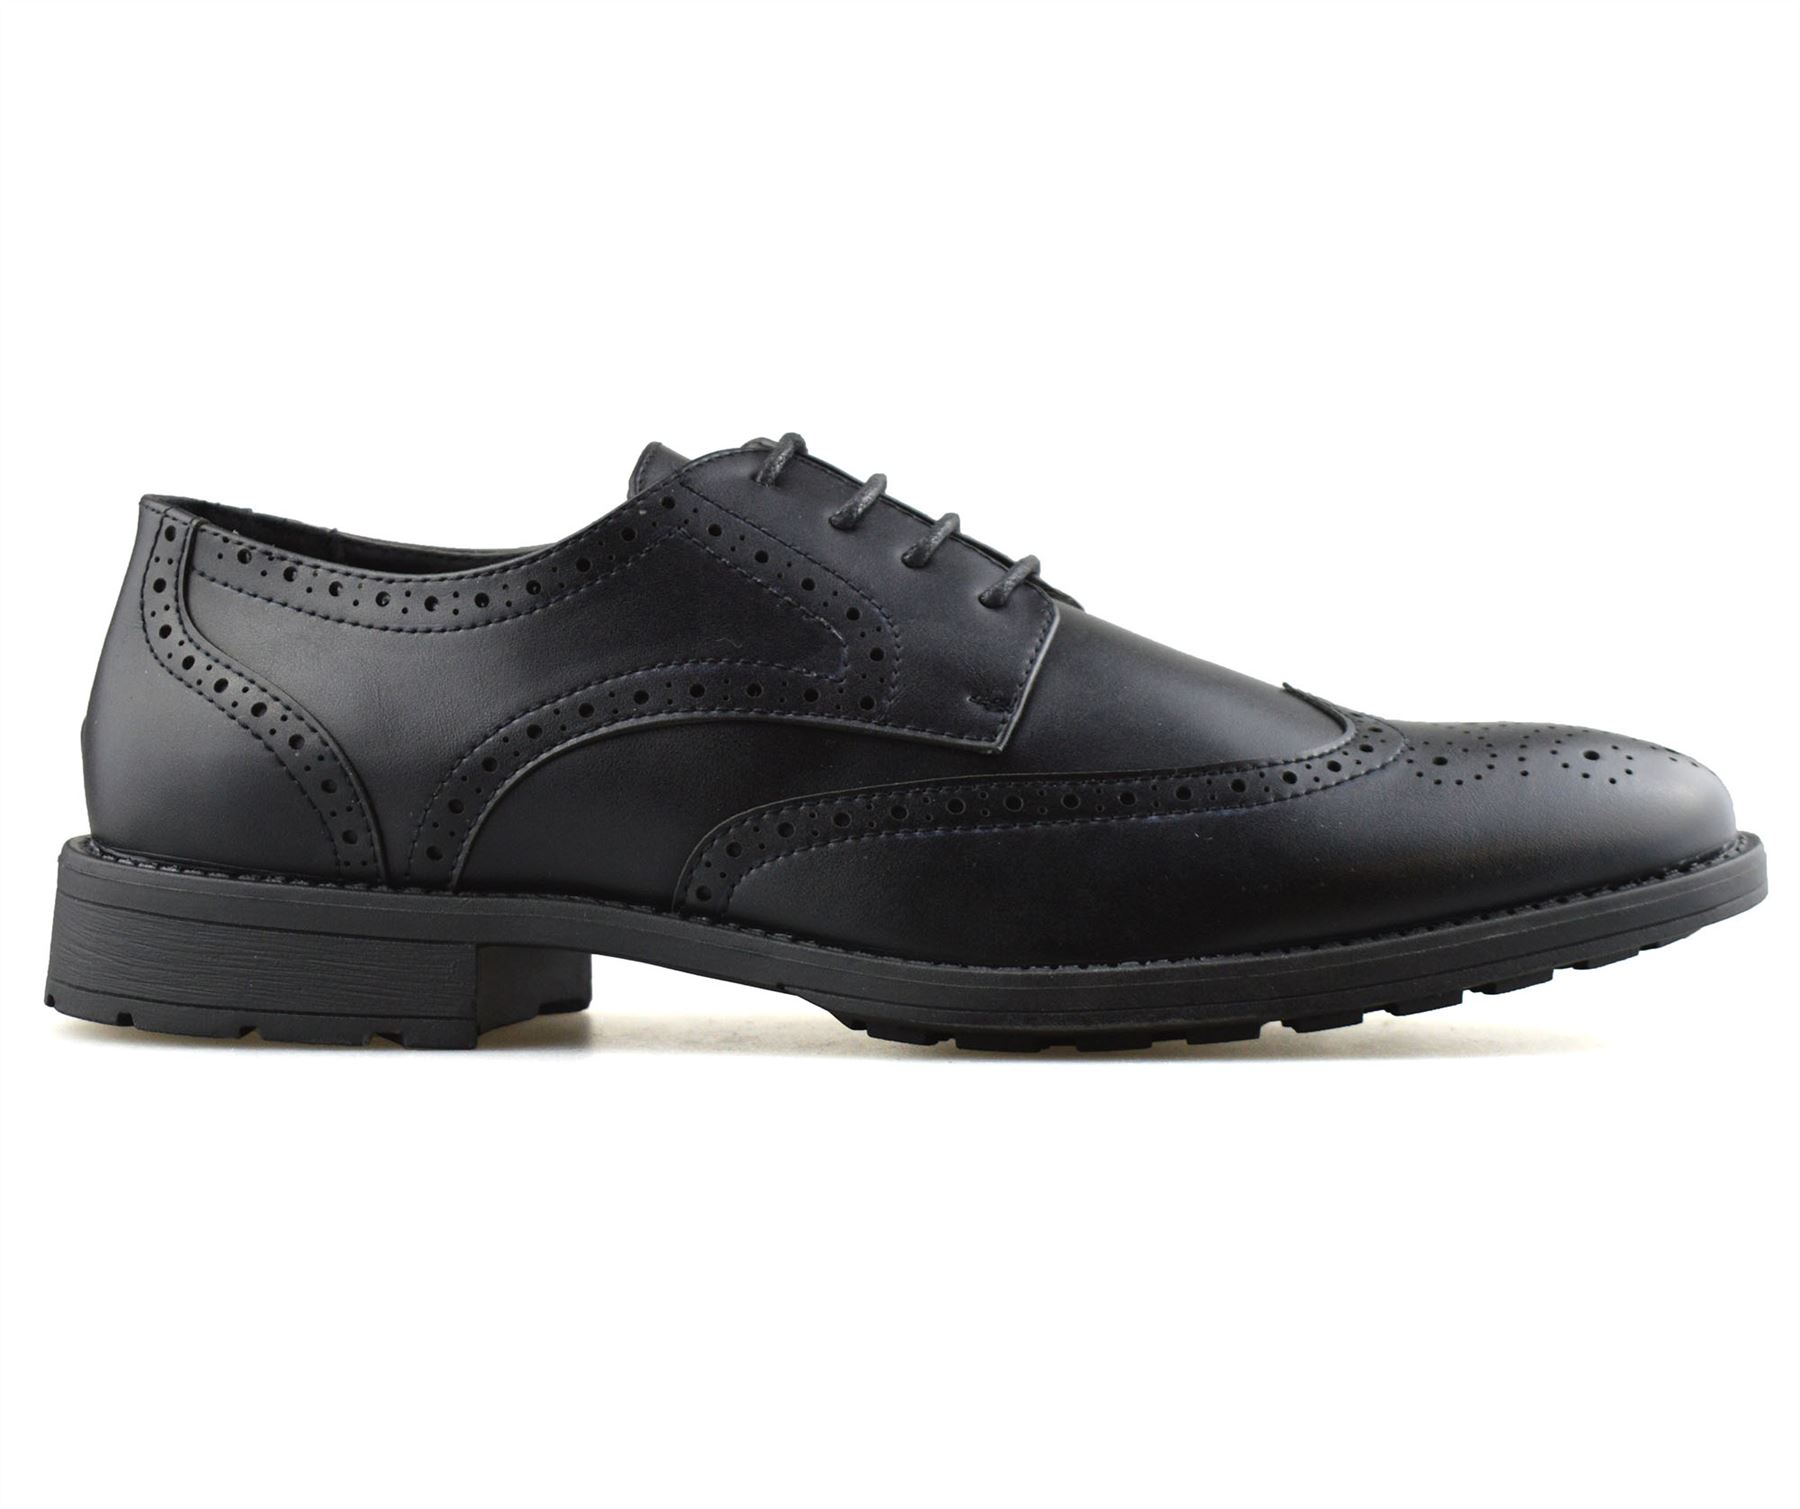 Mens-Smart-Casual-Lace-Up-Formal-Oxford-Brogues-Walking-Work-Office-Shoes-Size thumbnail 9